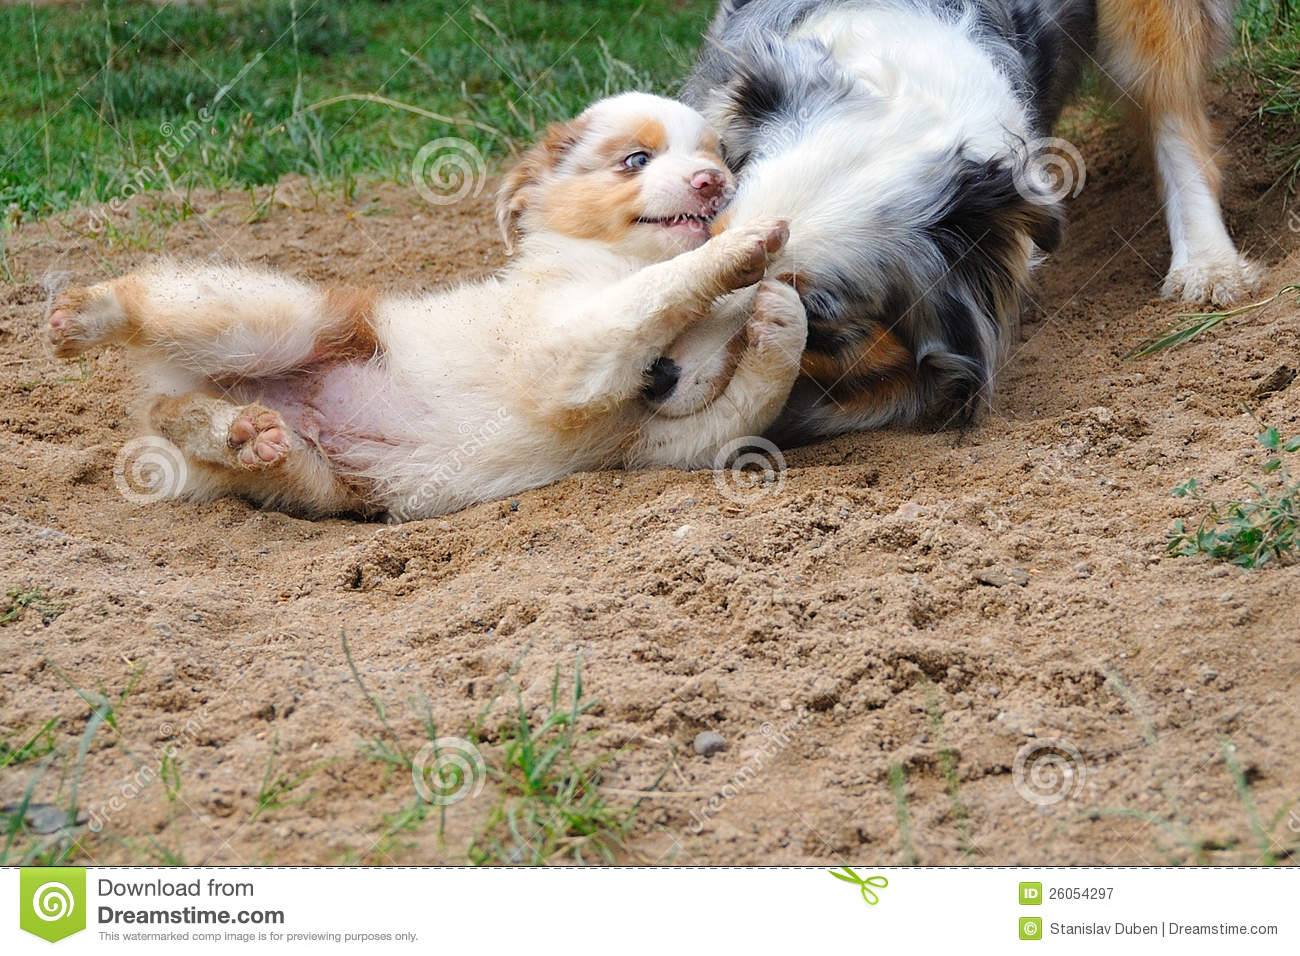 ... stock images of ` Australian Shepherd aussie with puppy in game